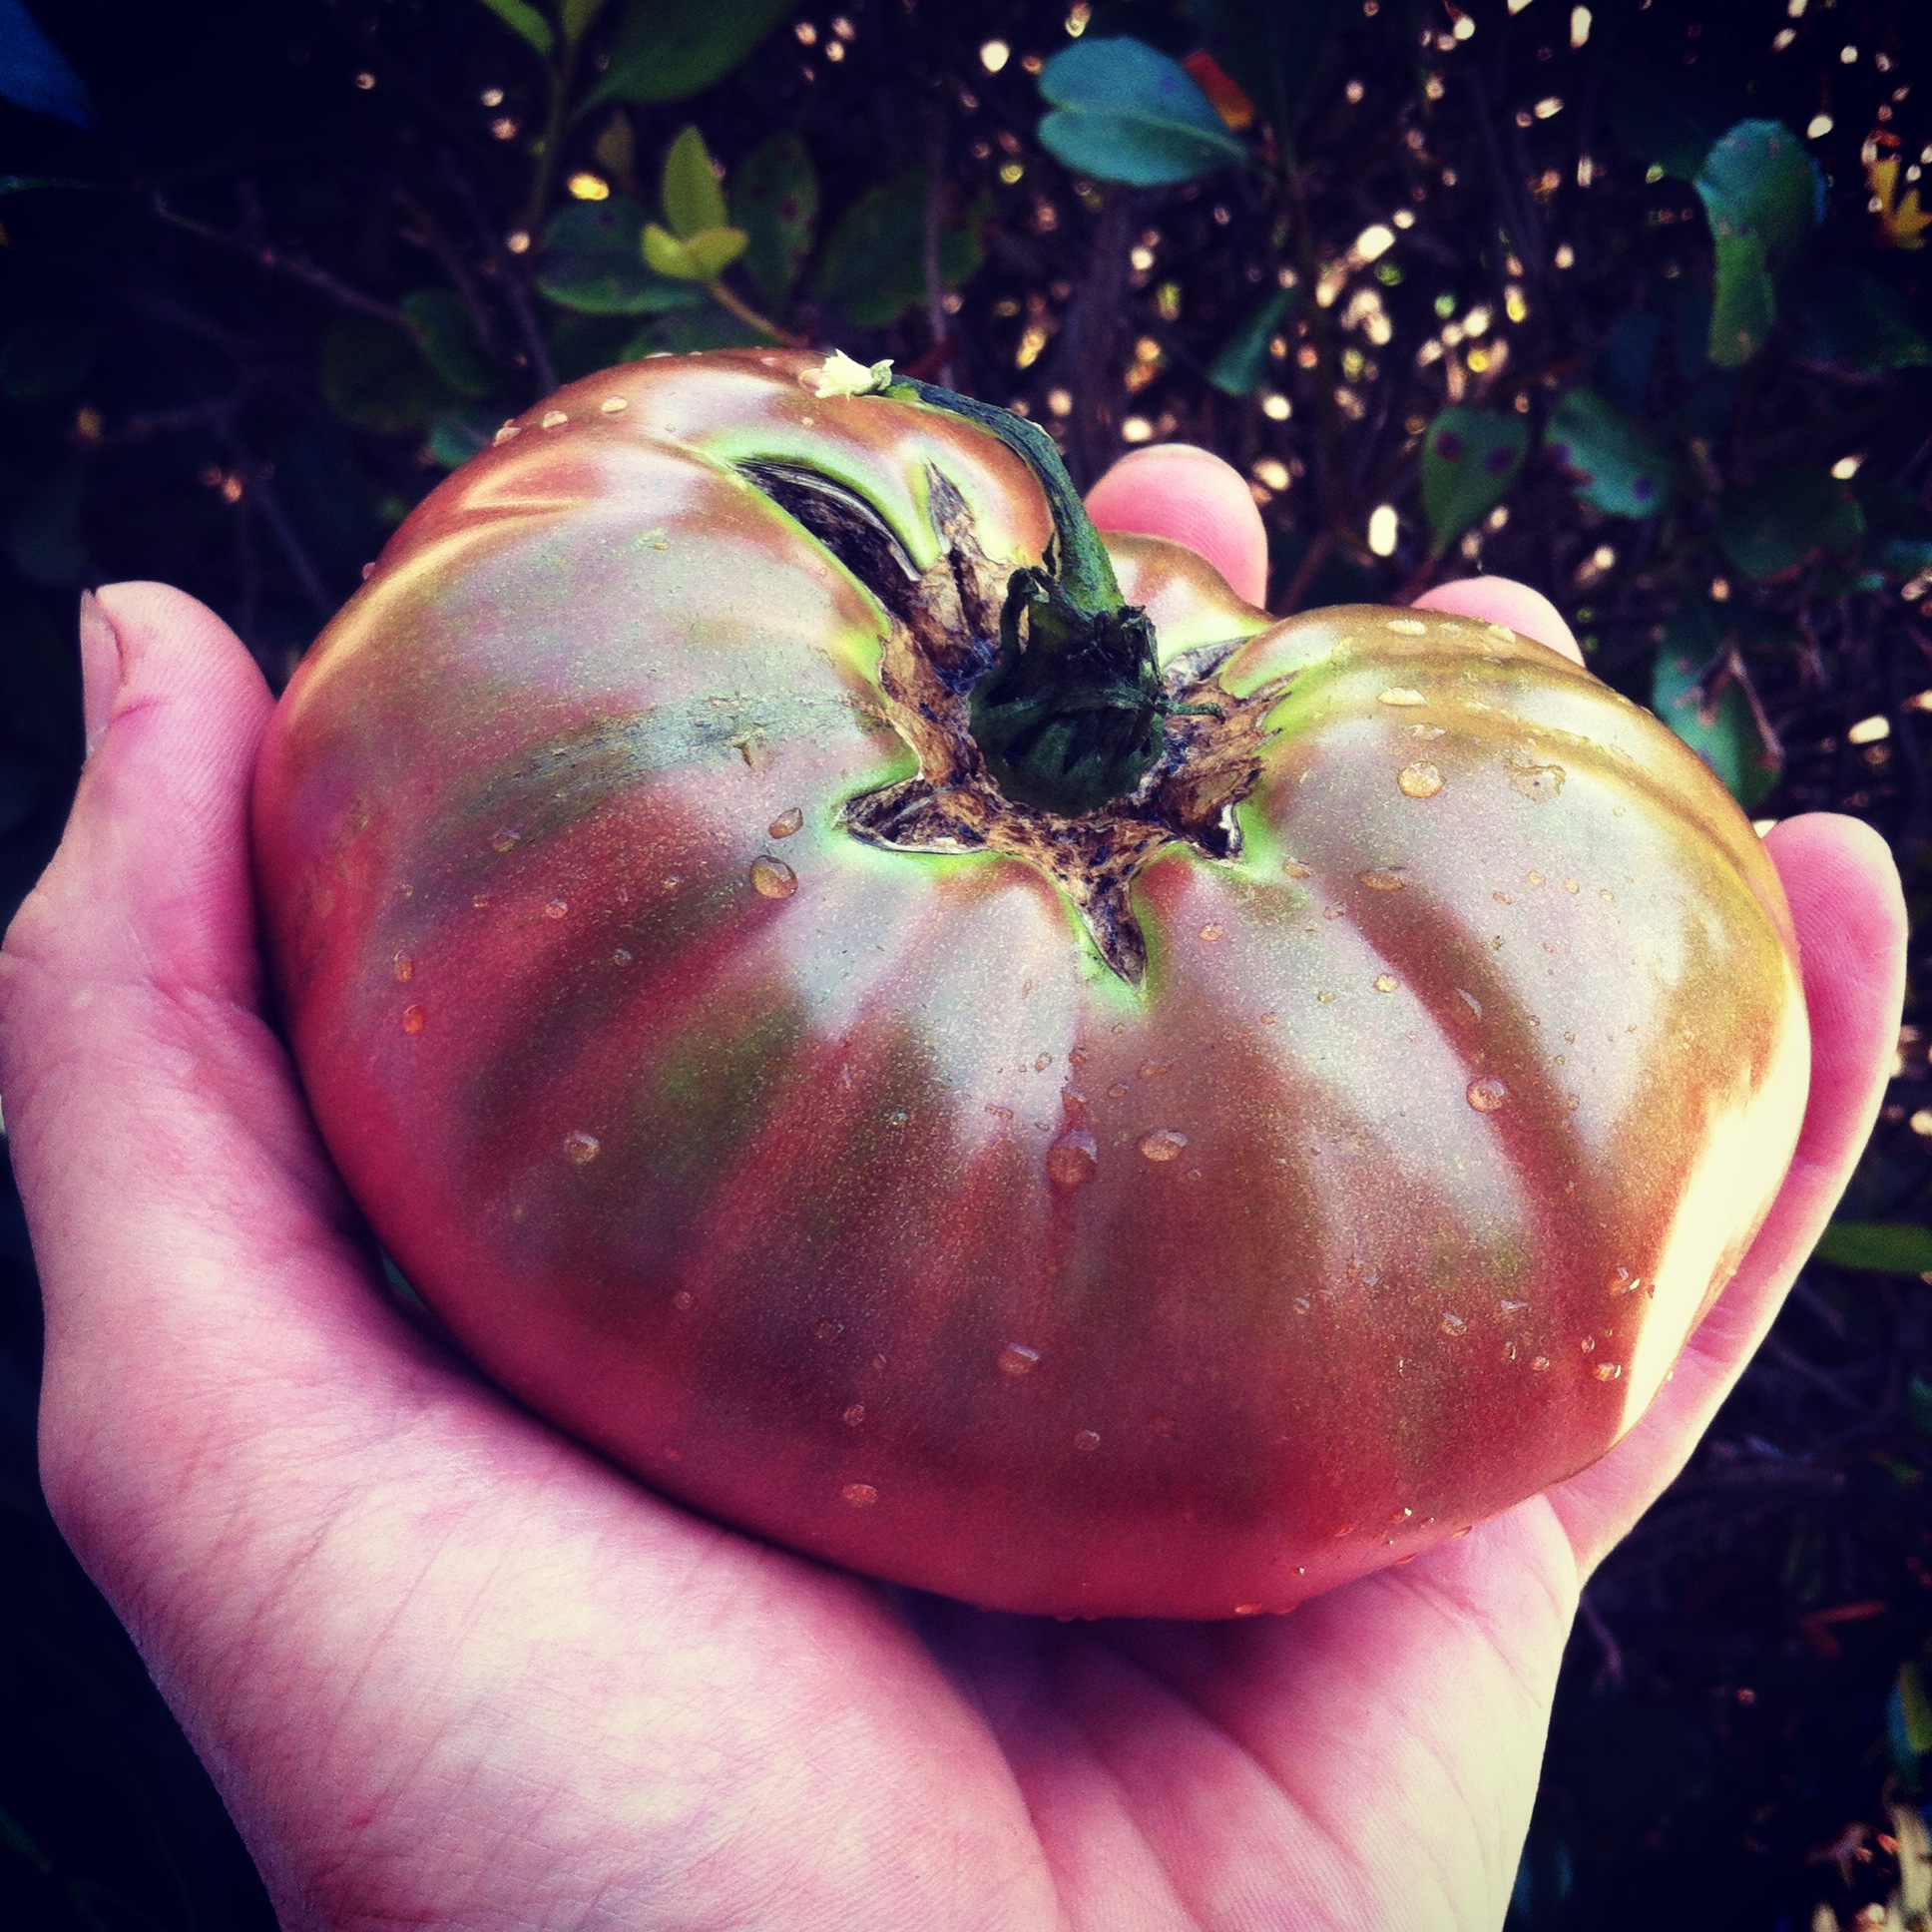 Mmm - fresh picked, organically grown heirloom tomato! 5 tomato growing tricks, article by GrowJourney